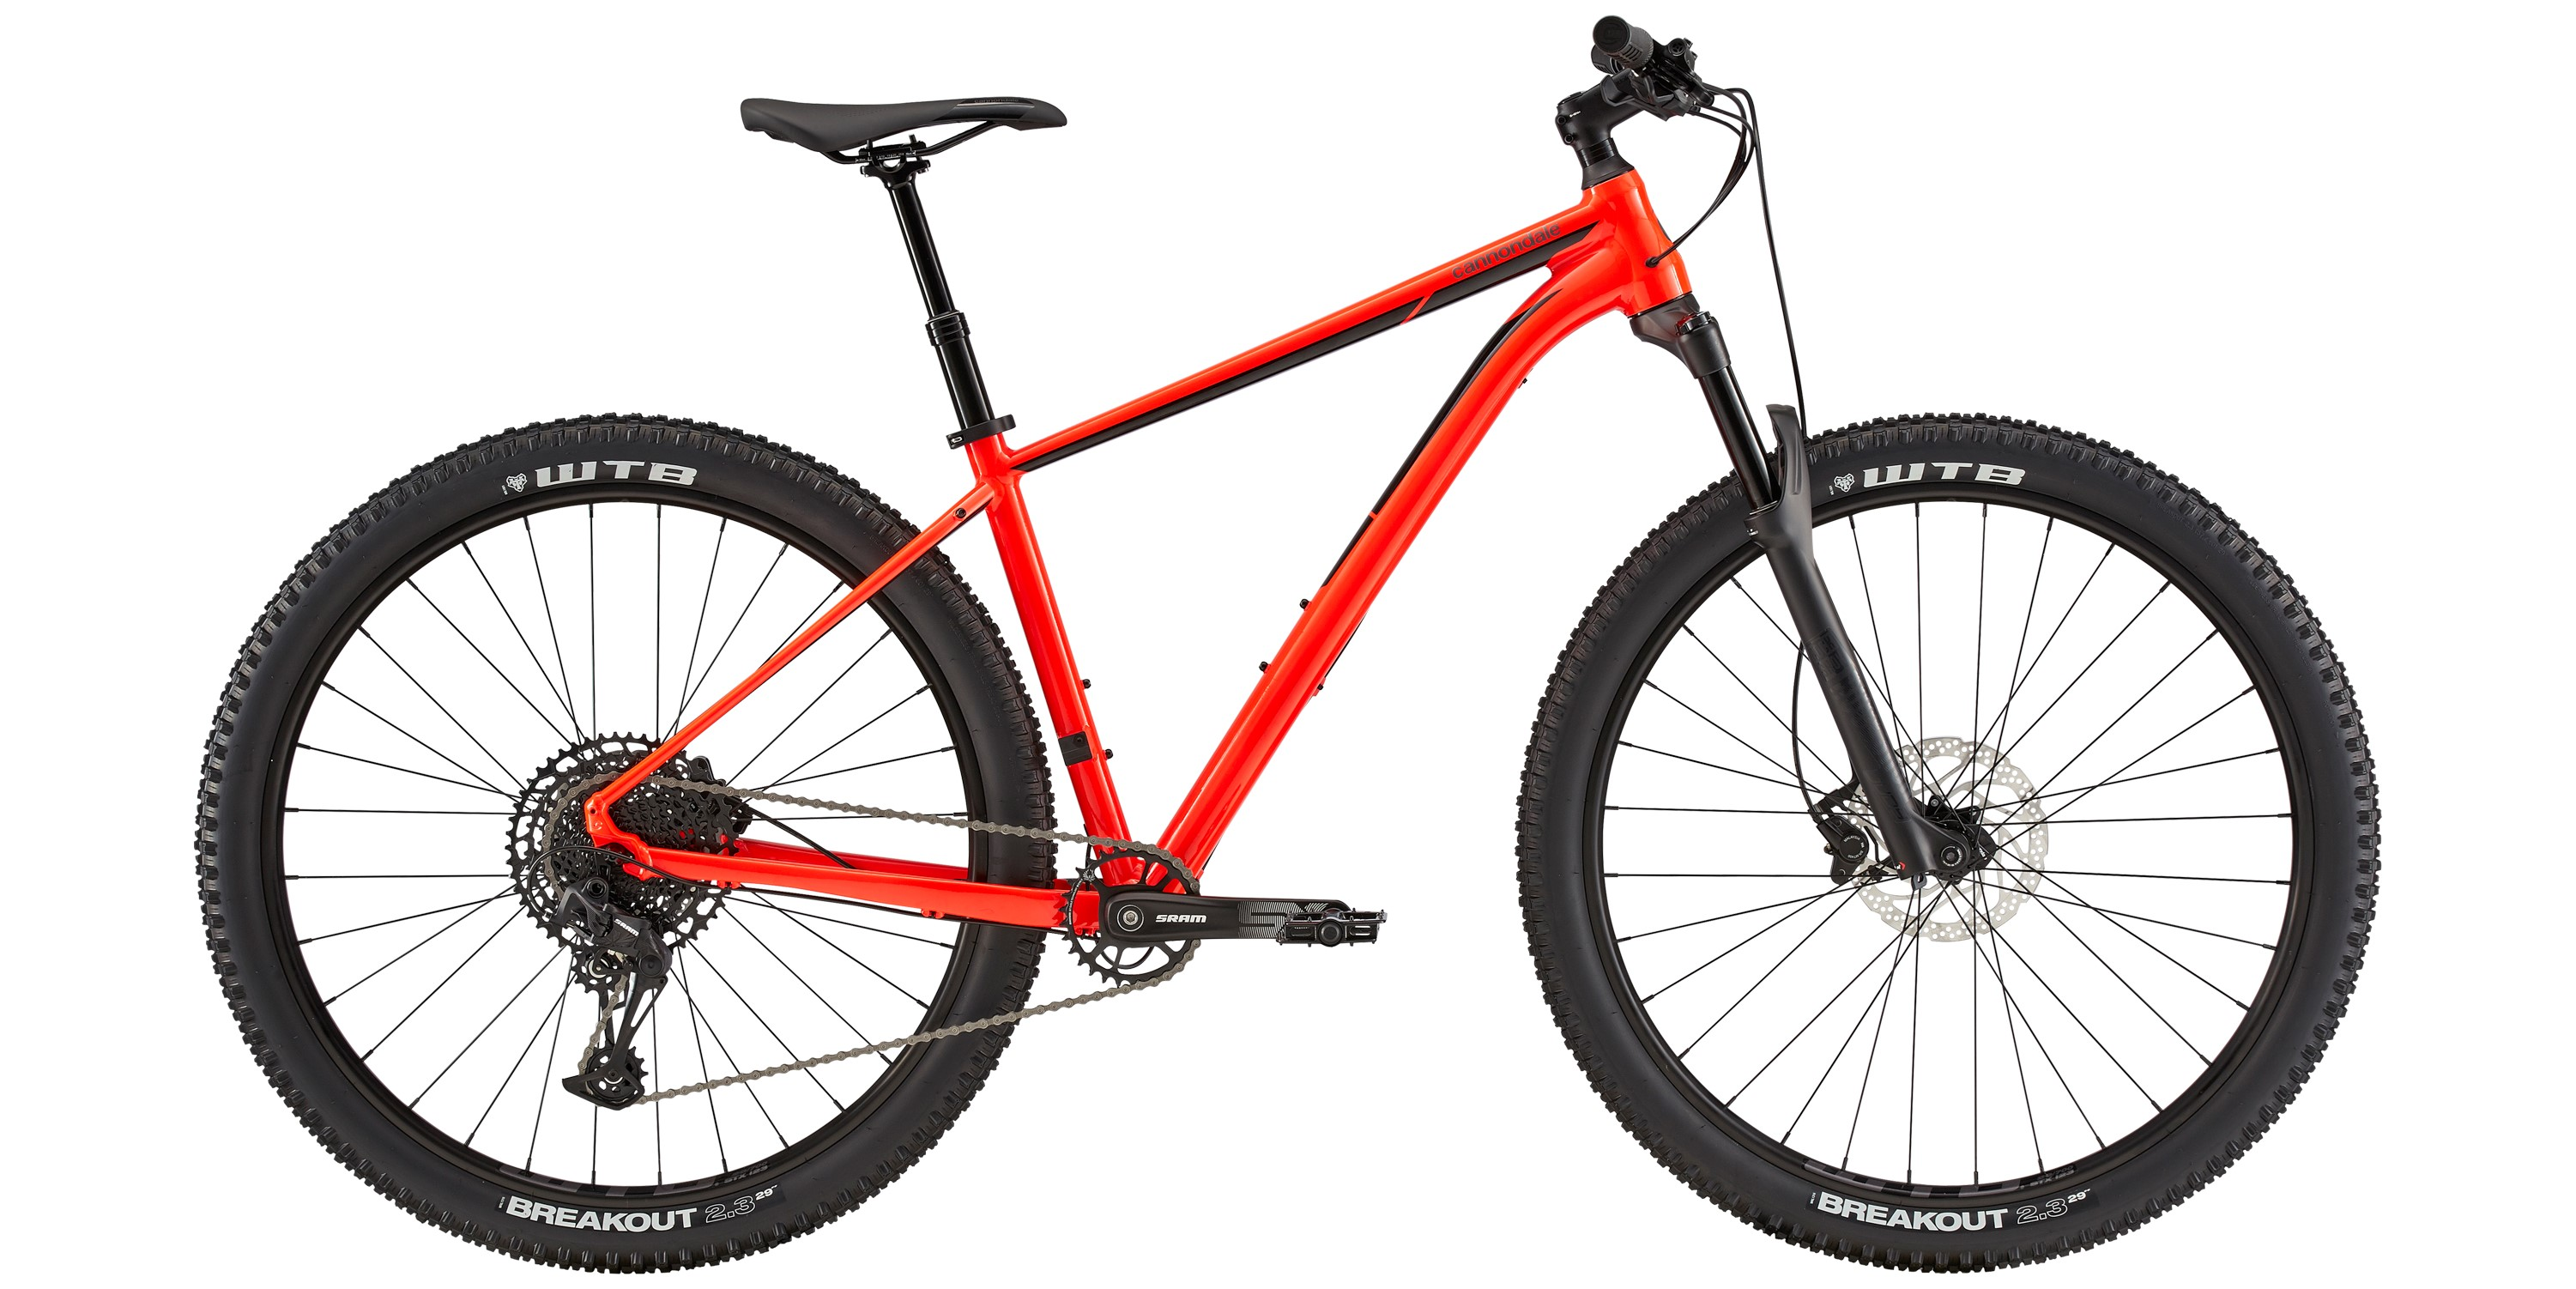 2020 Cannondale Trail 2 Mens Hardtail Mountain Bike in Red | Mountainbikes